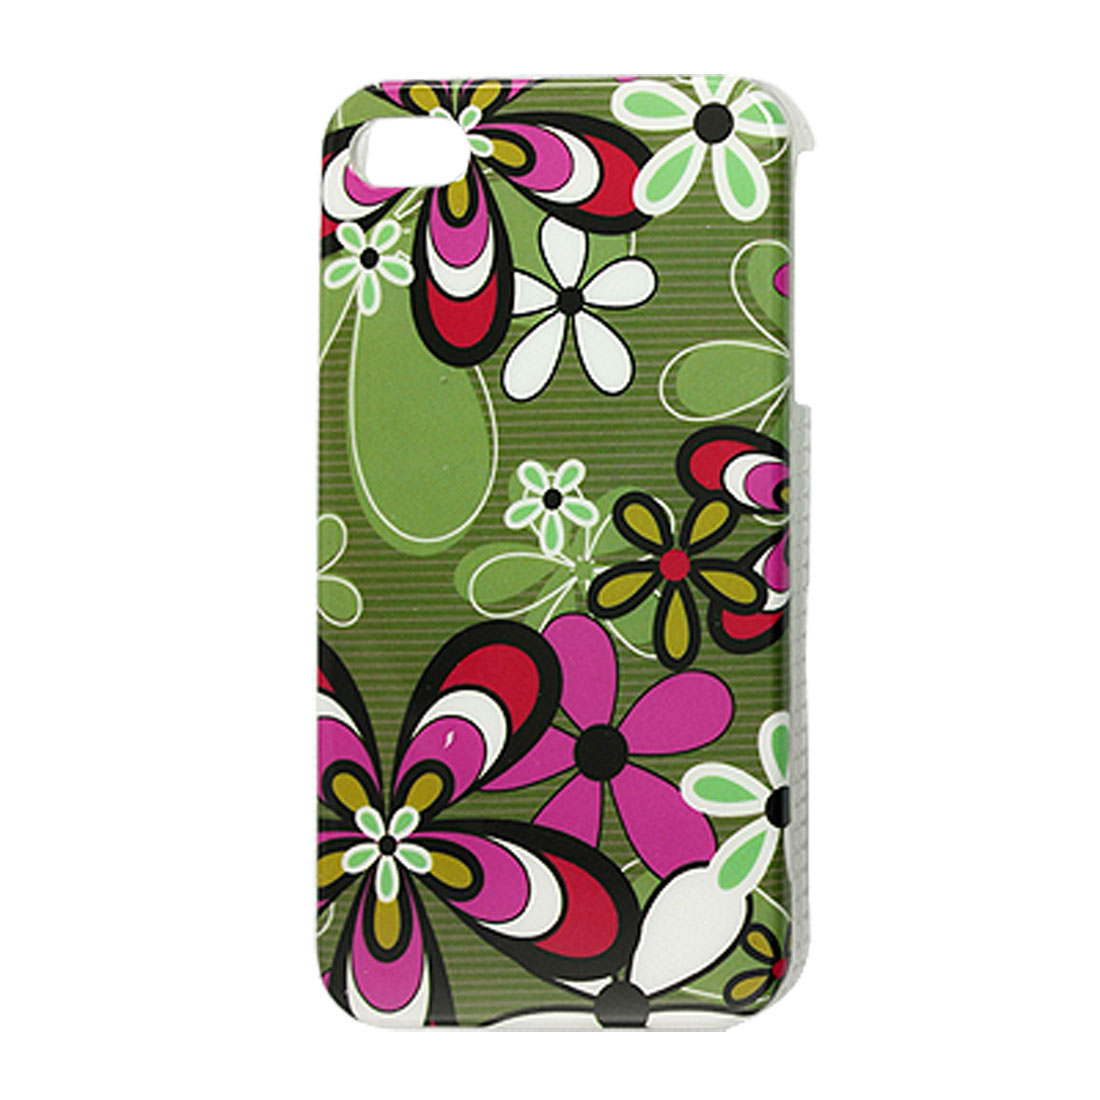 Protective Hard Plastic Colorful Flower IMD Back Case for iPhone 4 4G 4S